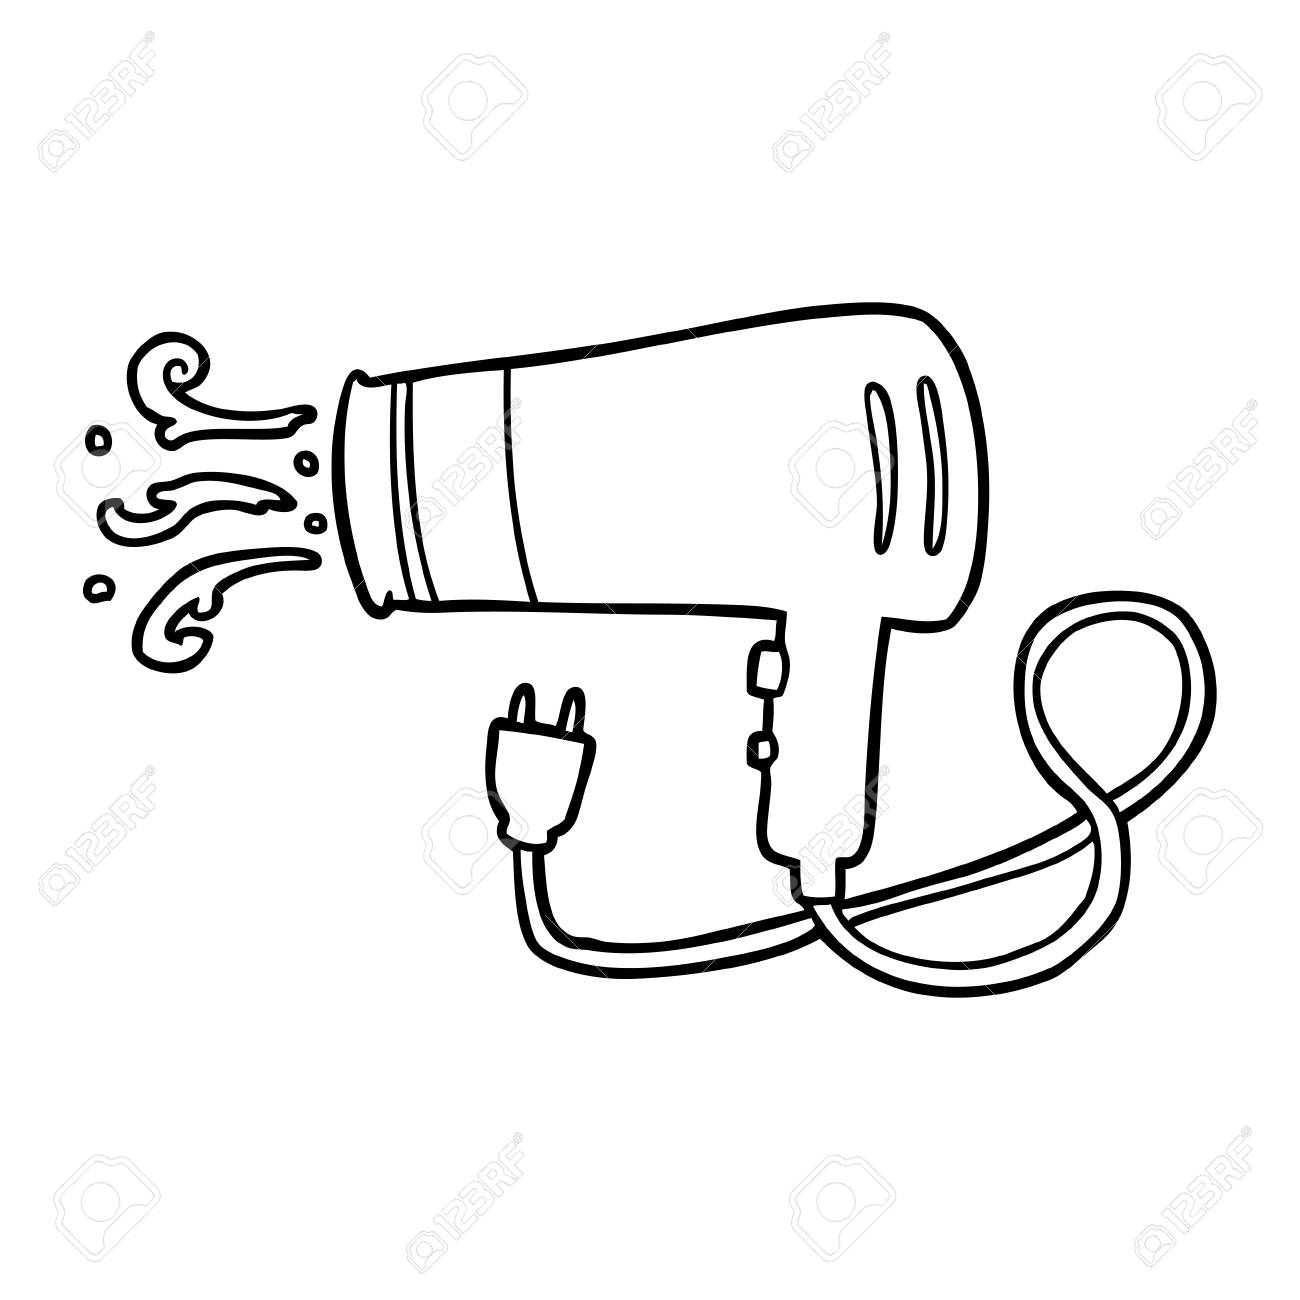 Line Drawing Of A Electric Hairdryer Royalty Free Cliparts Vectors And Stock Illustration Image 94924121